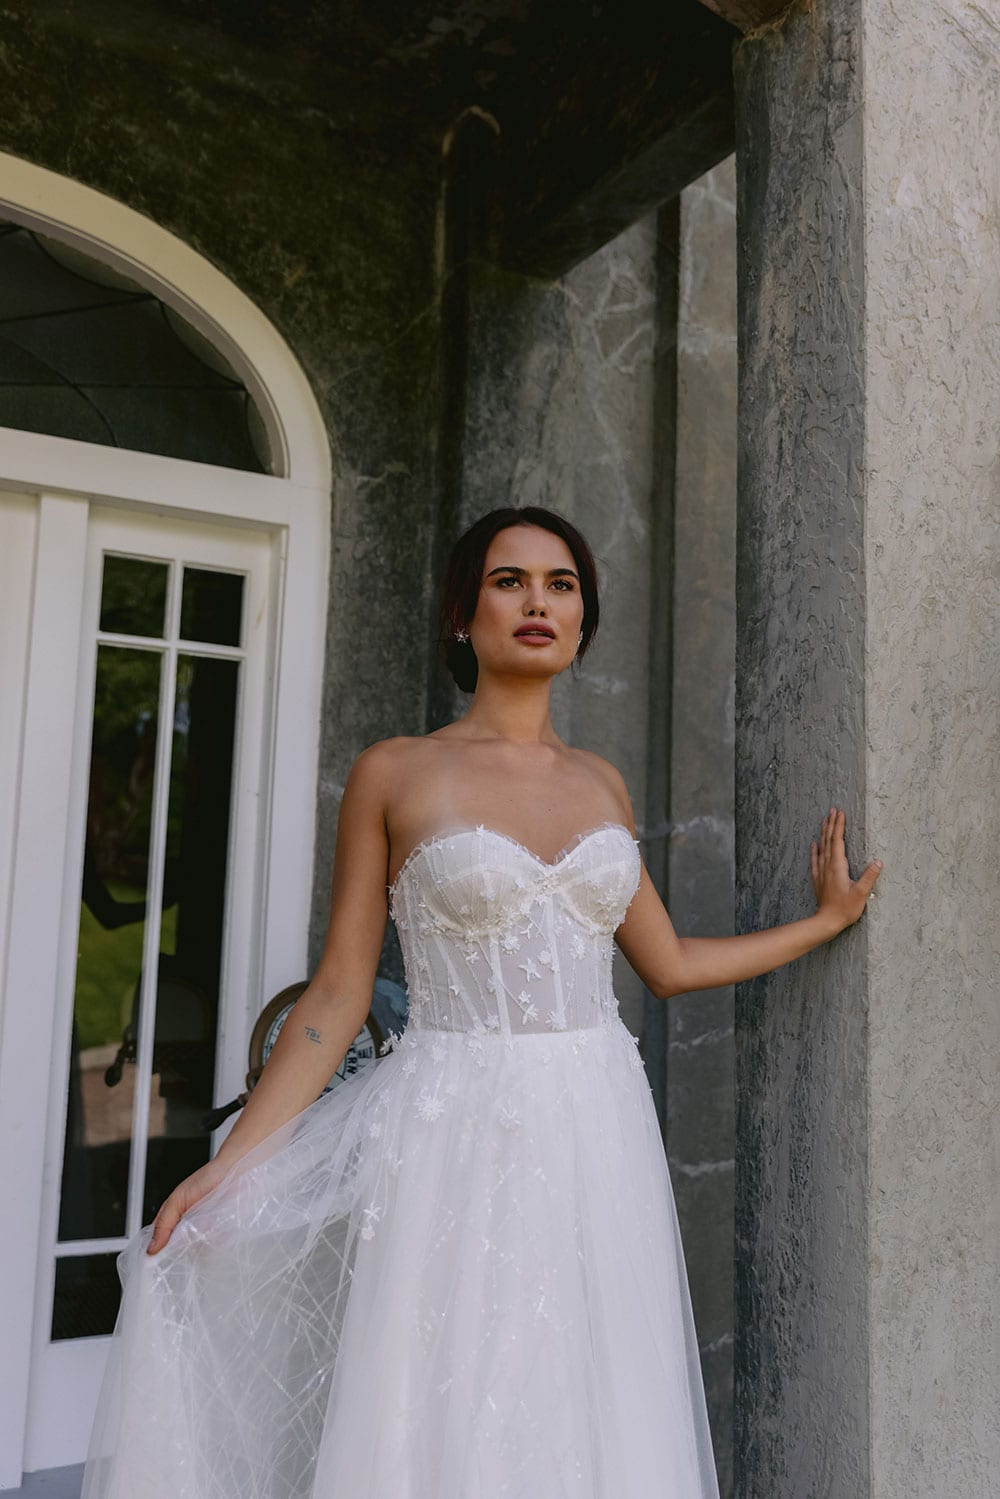 Hikari Wedding gown from Vinka Design - This modern wedding dress has a structured semi-sheer bodice with hand-appliqued lace of stars and flowers. The skirt is made with multiple layers of soft tulle. Model wearing gown holding skirt out in entrance to old building in Clevedon, near Auckland.